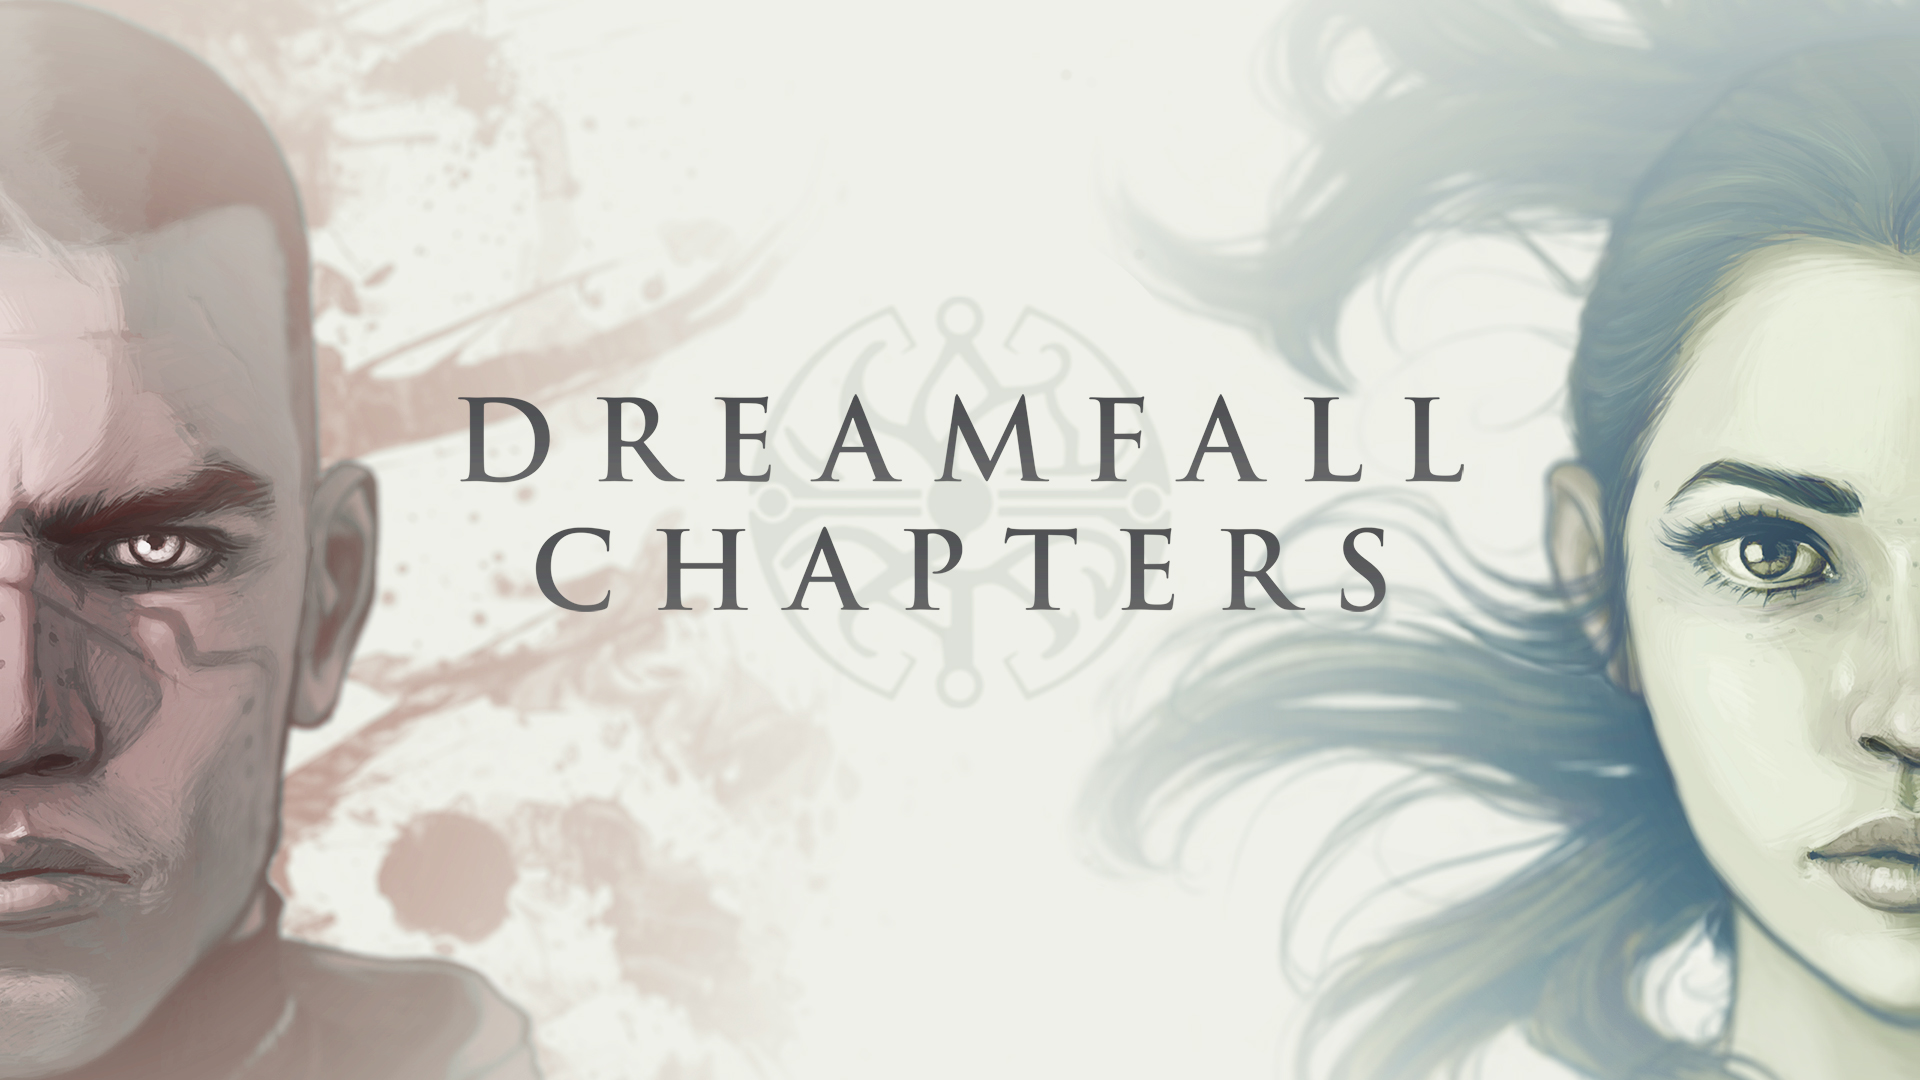 Dreamfall chapters concludes the dreamer cycle and the gripping story of zo0eb, the